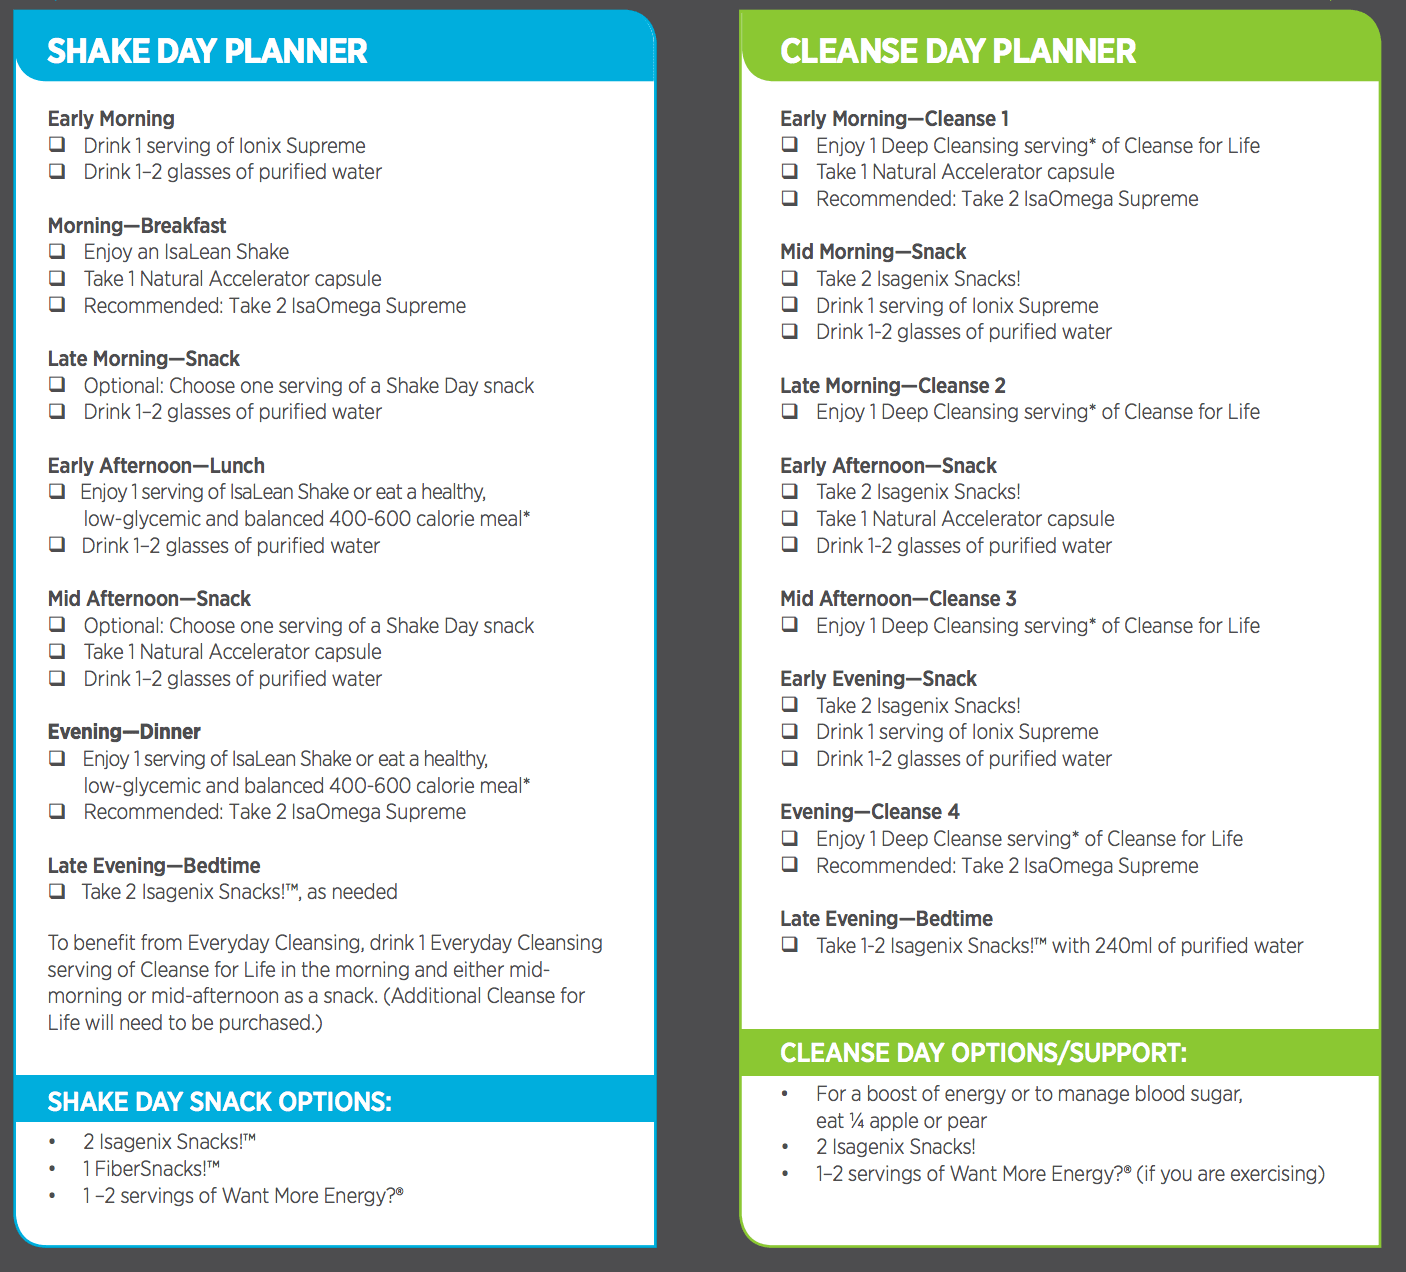 Vimpat Schedule Drug: Isagenix Shake And Cleanse Pak Schedule For Isagenix Cleanse Day Schedule Printable